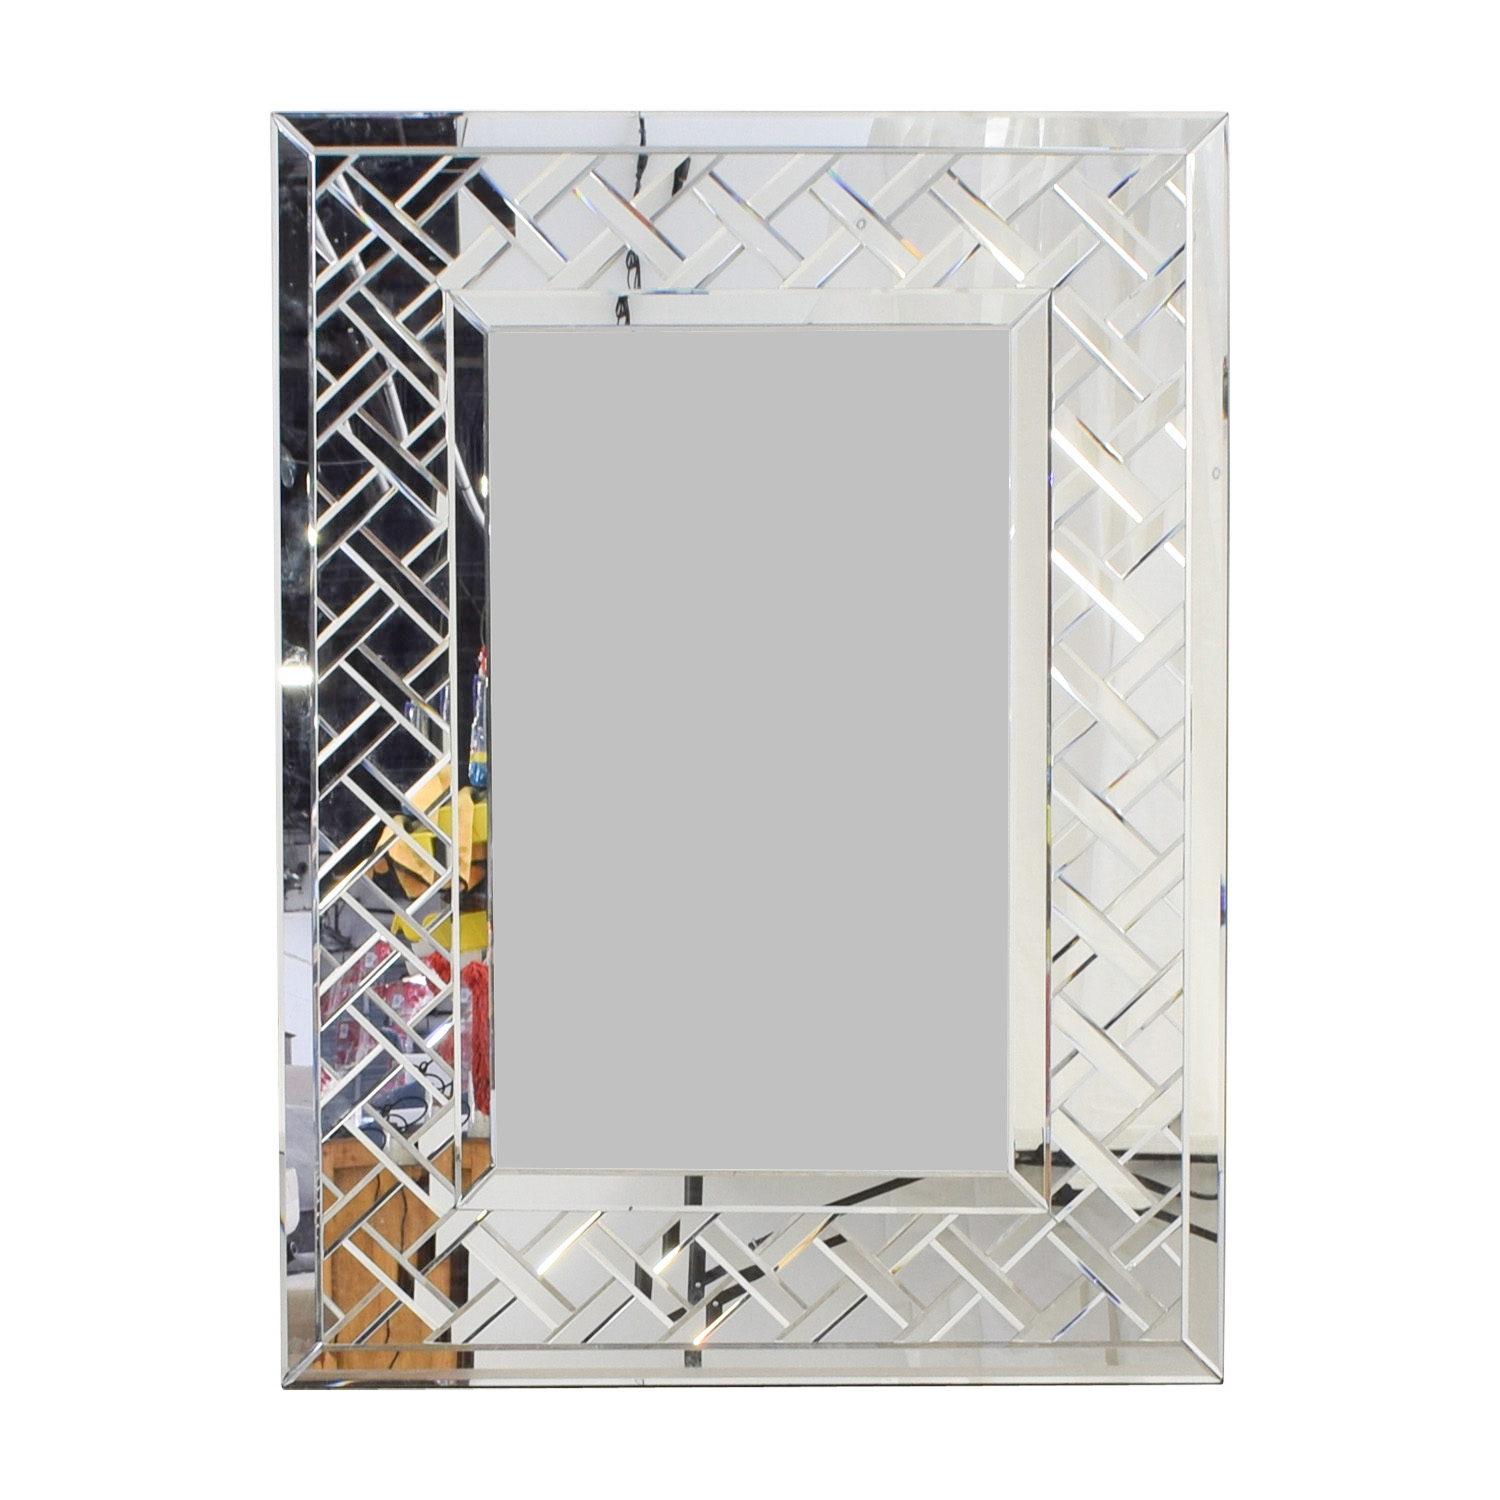 Uttermost Uttermost Picket Fence Border Wall Mirror second hand